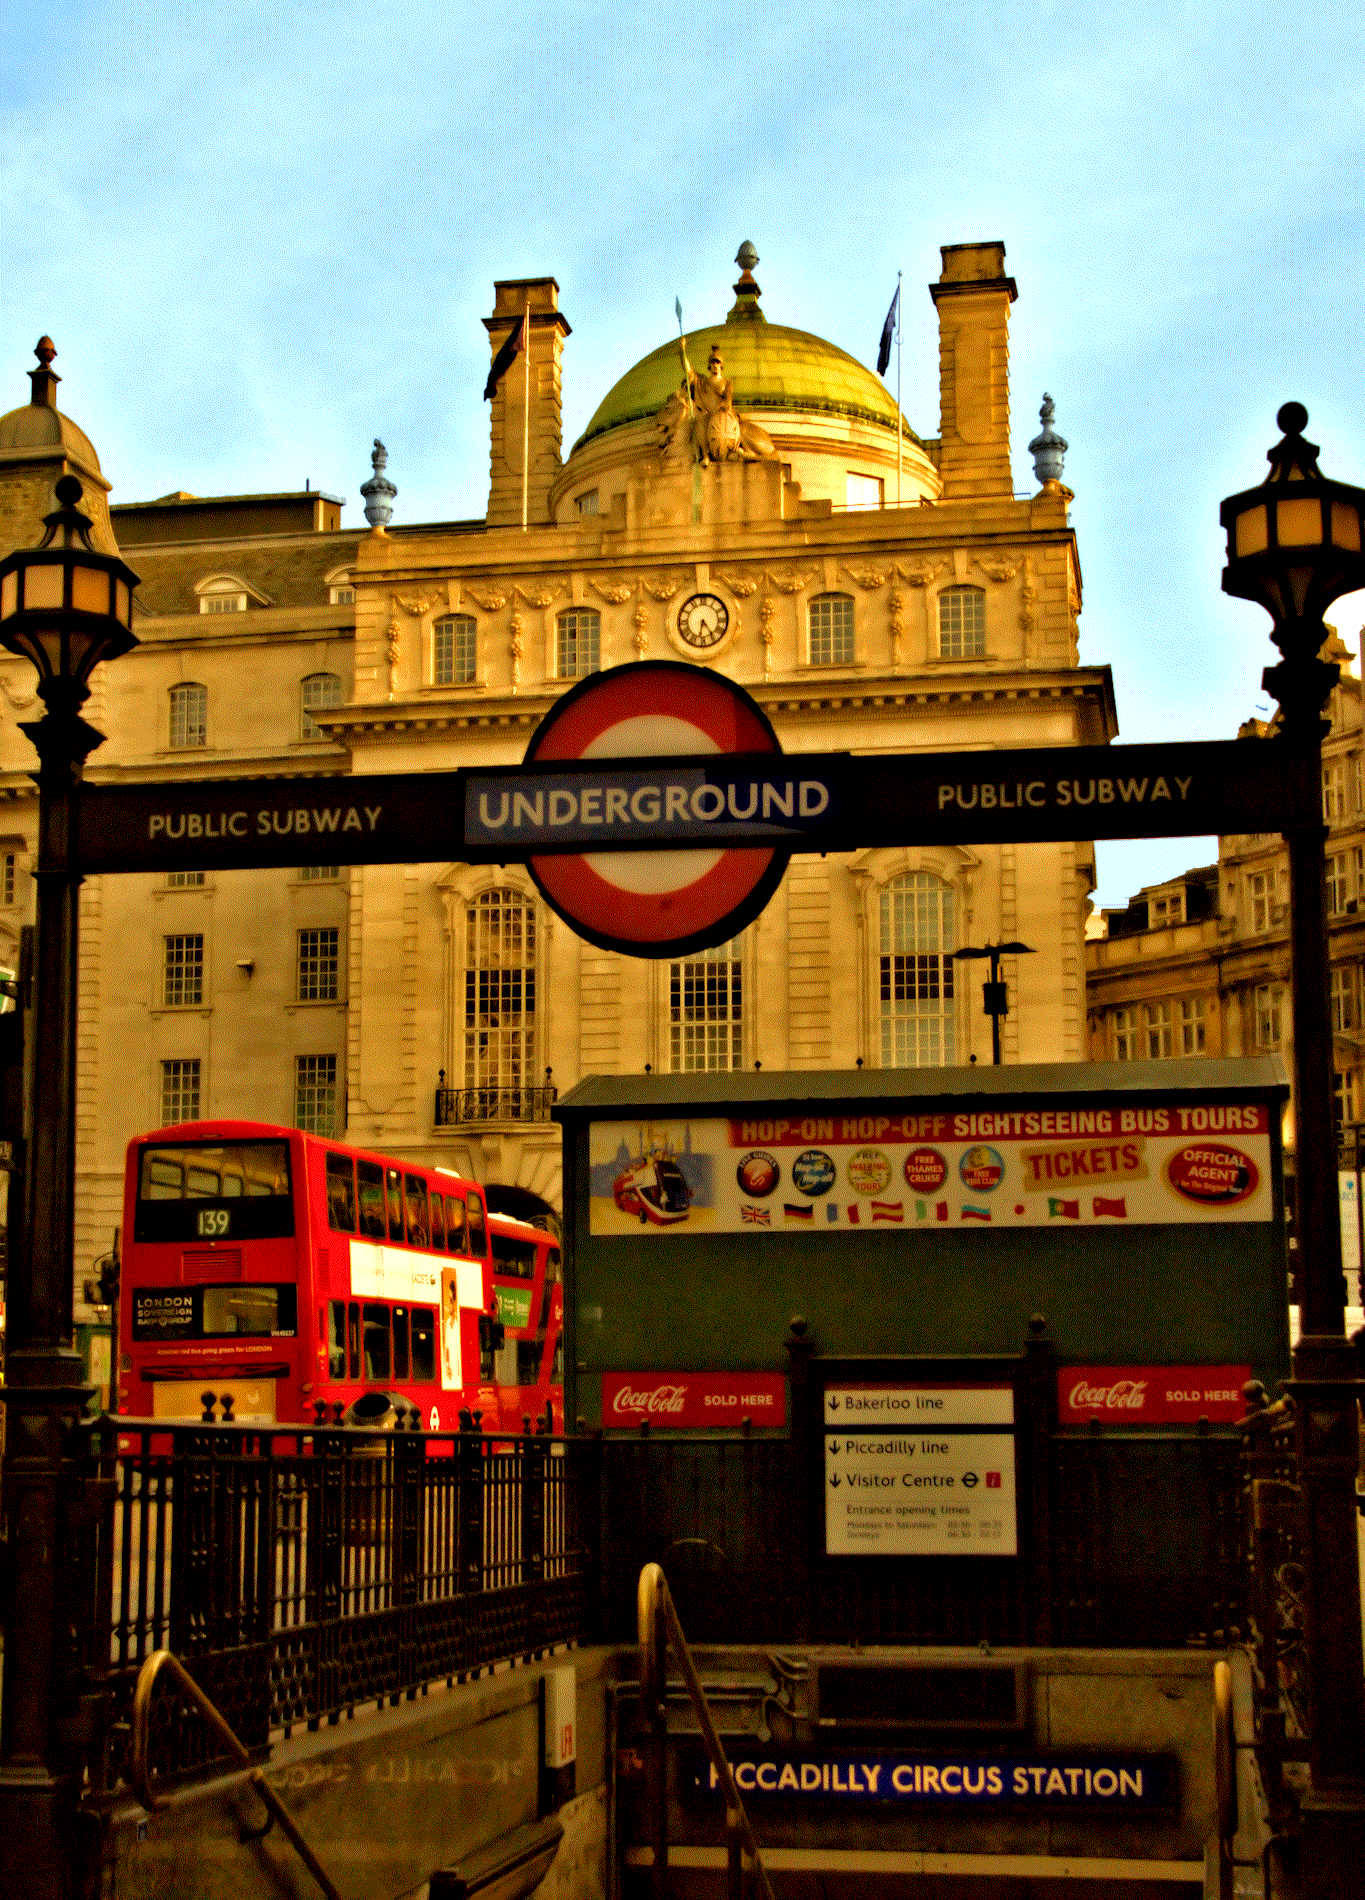 From Piccadilly London Photos - Week of the Sept. 11th to 15th